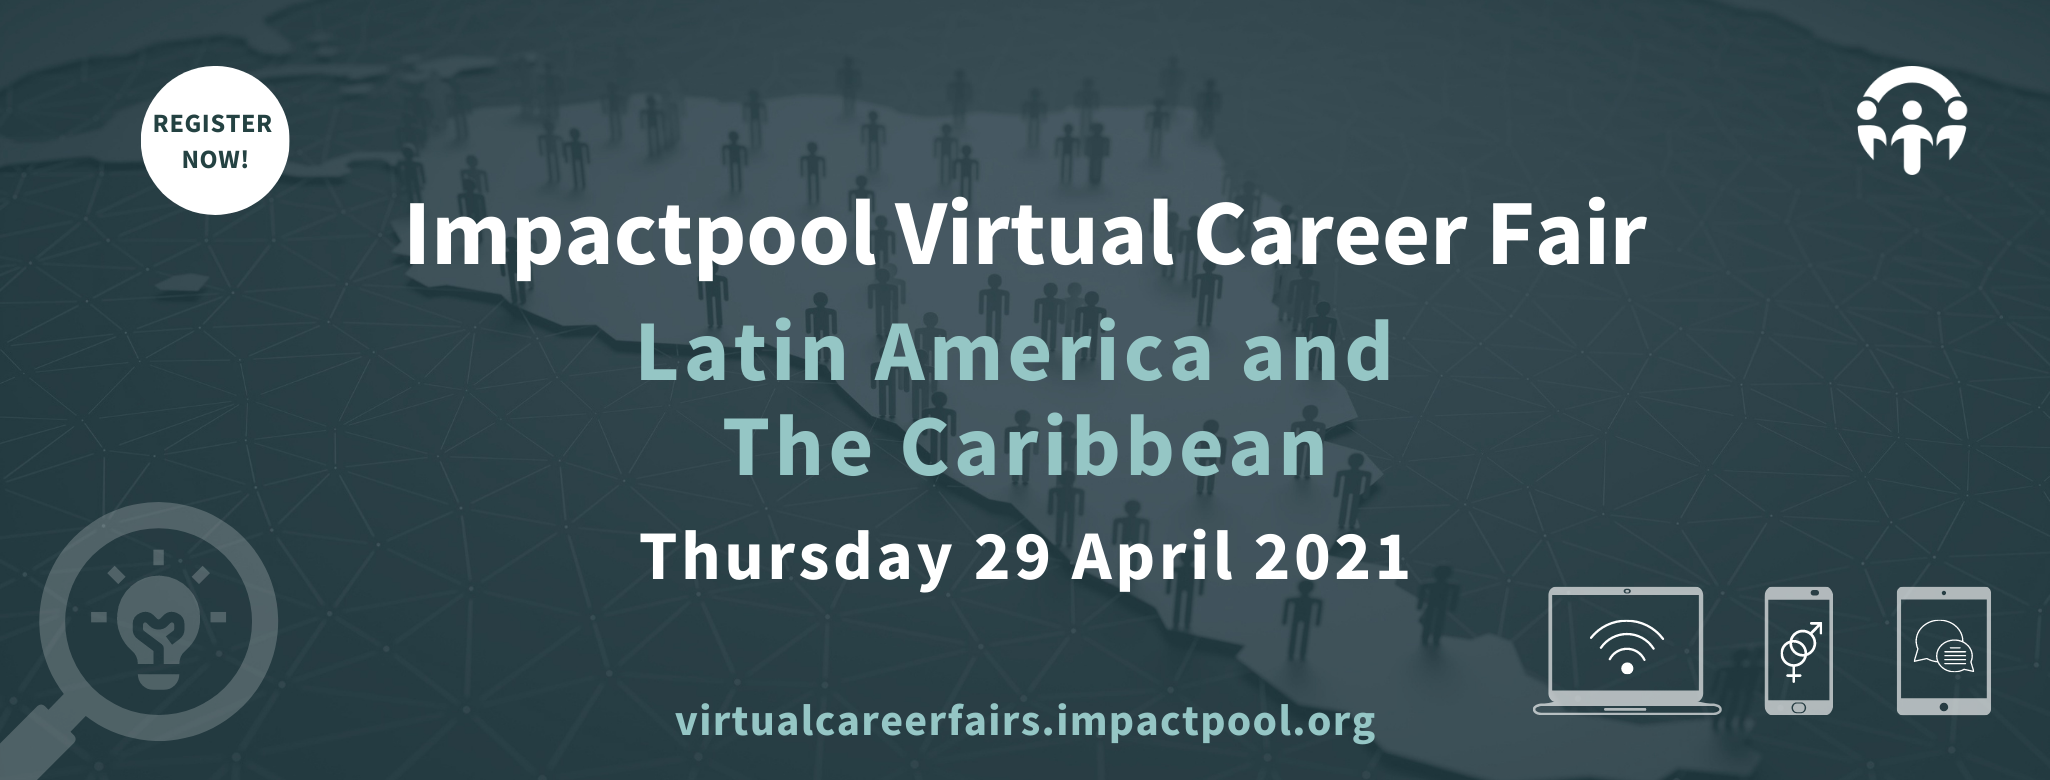 An impactpool virtual career fair for latin america and the caribbean 005d1800 5937 4f96 8c53 278958be96e2